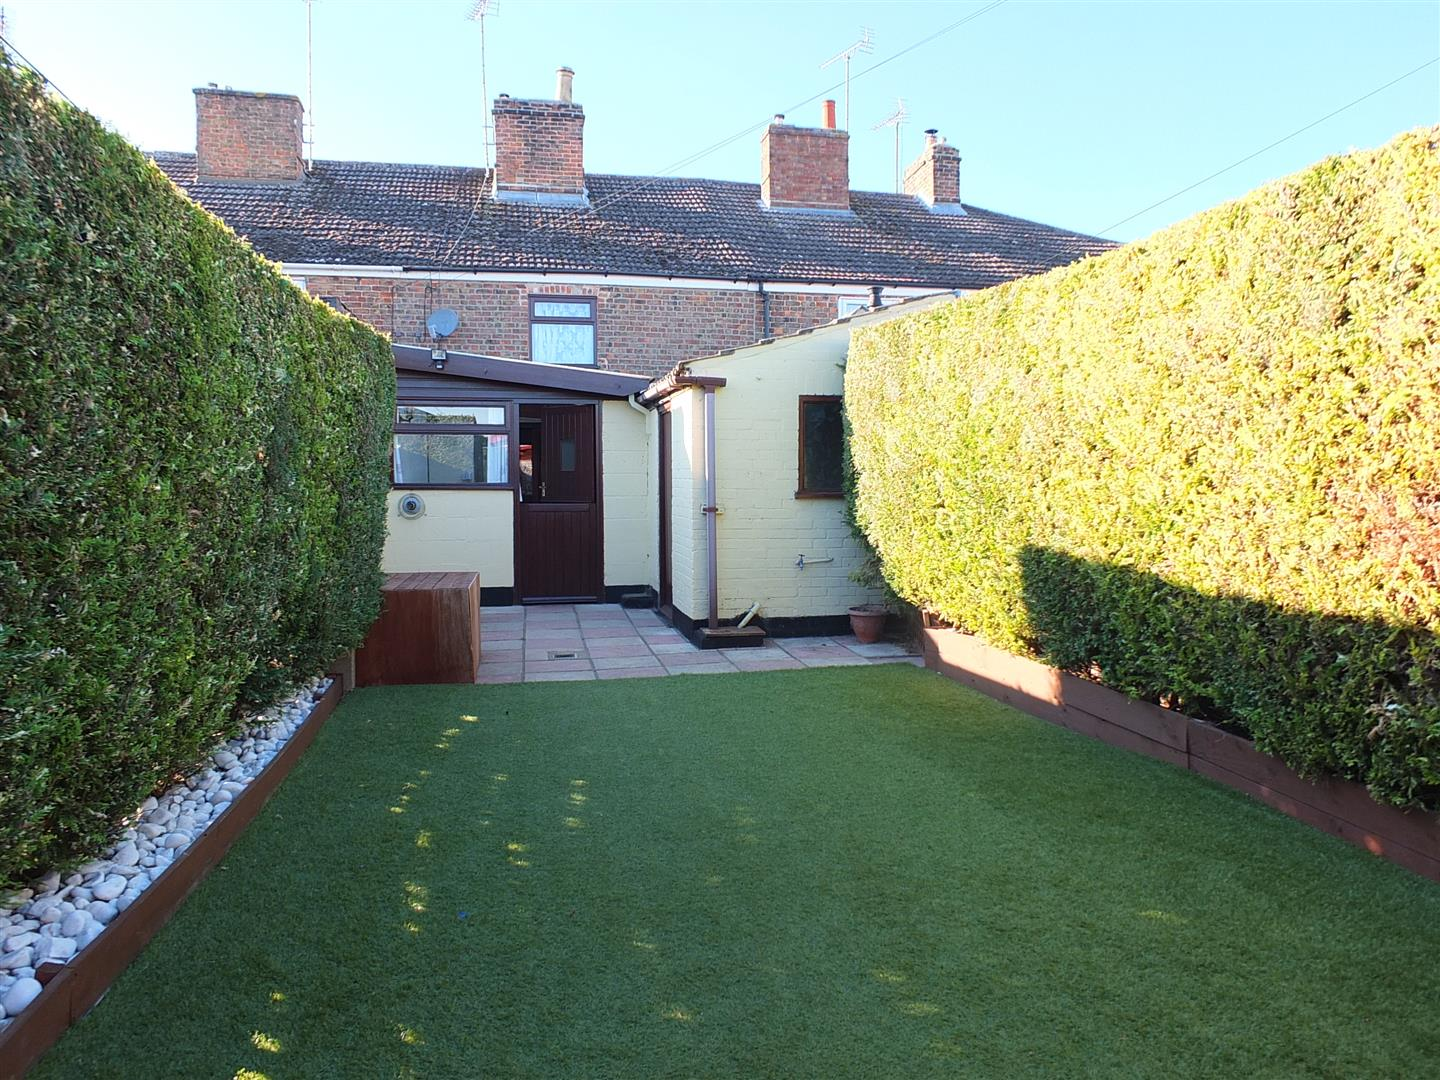 3 bed house to rent in Sutton Bridge Spalding, PE12 9UJ  - Property Image 11